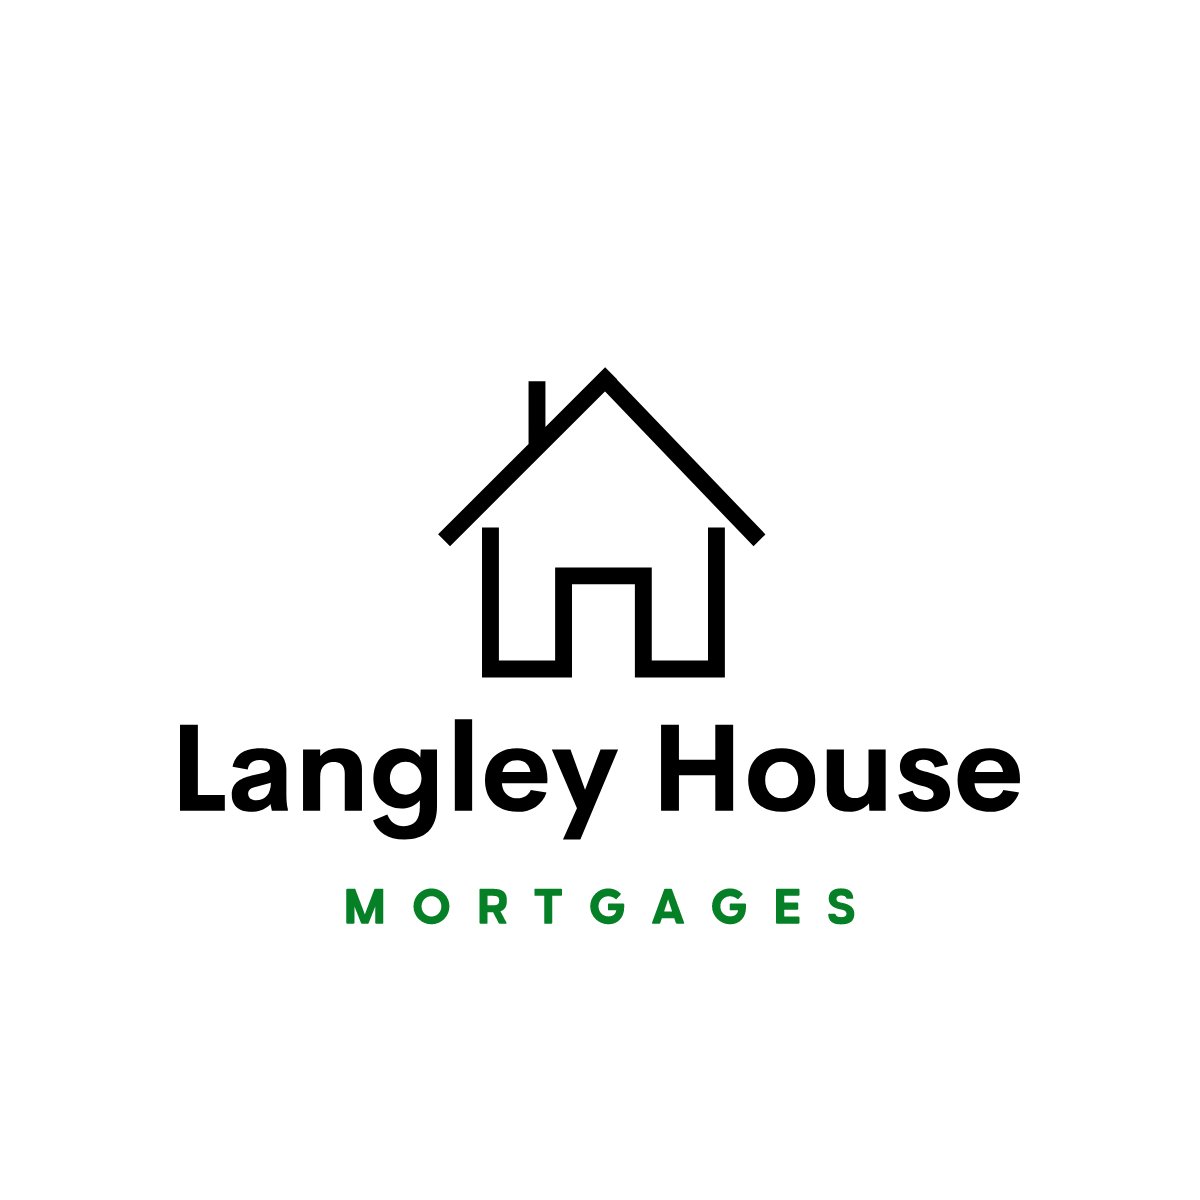 Langley House Mortgages Ltd